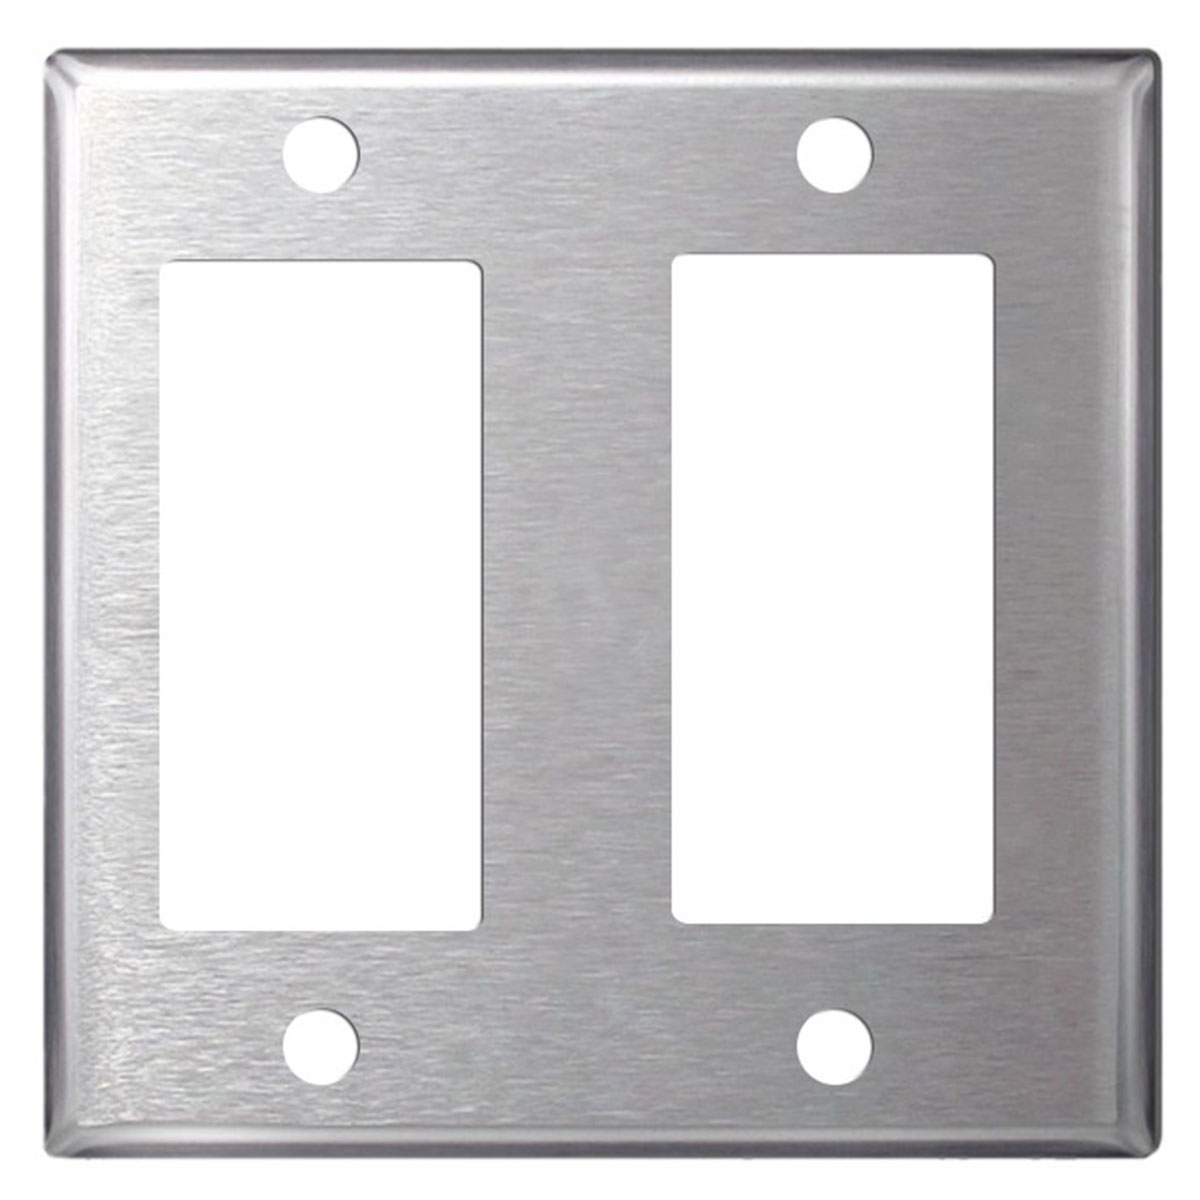 Blank Switch Plate Stunning Stainless Steel Wall Plates  Single Double Gang  Blank Toggle Inspiration